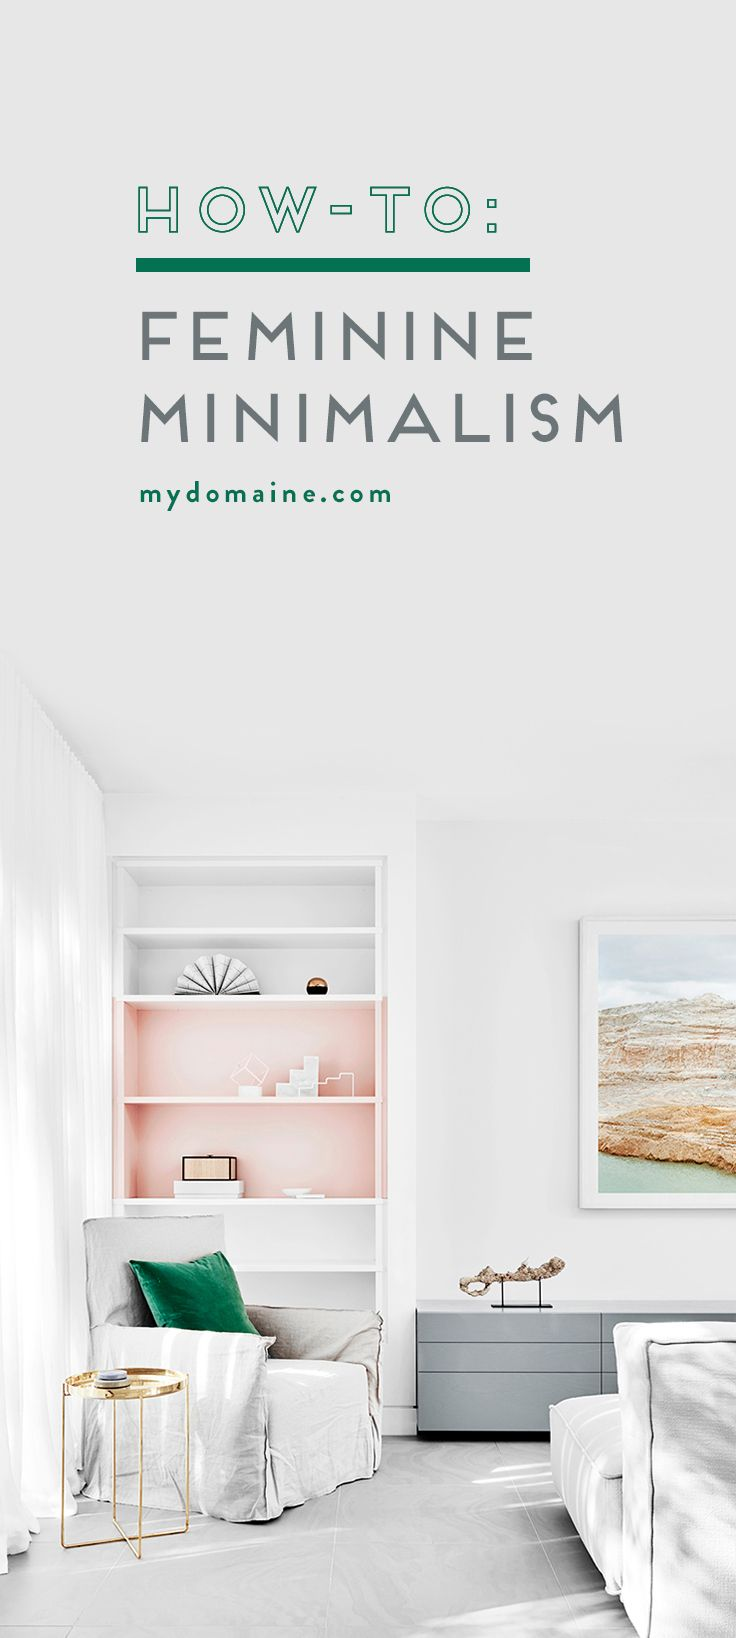 This is happening feminine minimalism minimalismus for Minimalismus haus